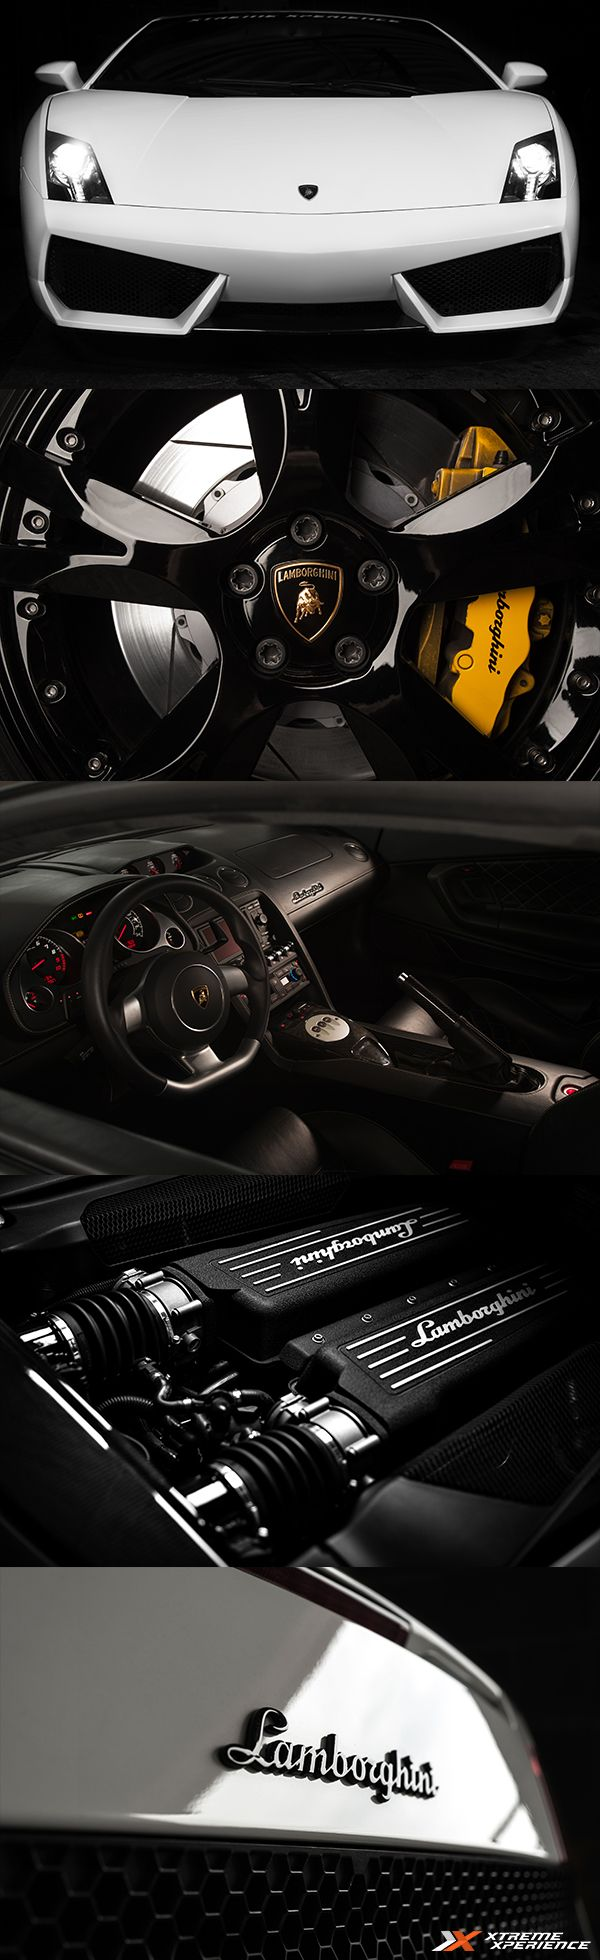 Take a look around the world famous Lamborghini Gallardo. The Gallardo is Lamborghini's best selling vehicles and one the best looking cars on the road. It just so happens to be loads of fun on the track. Click the link to drive this supercar at a track near you.